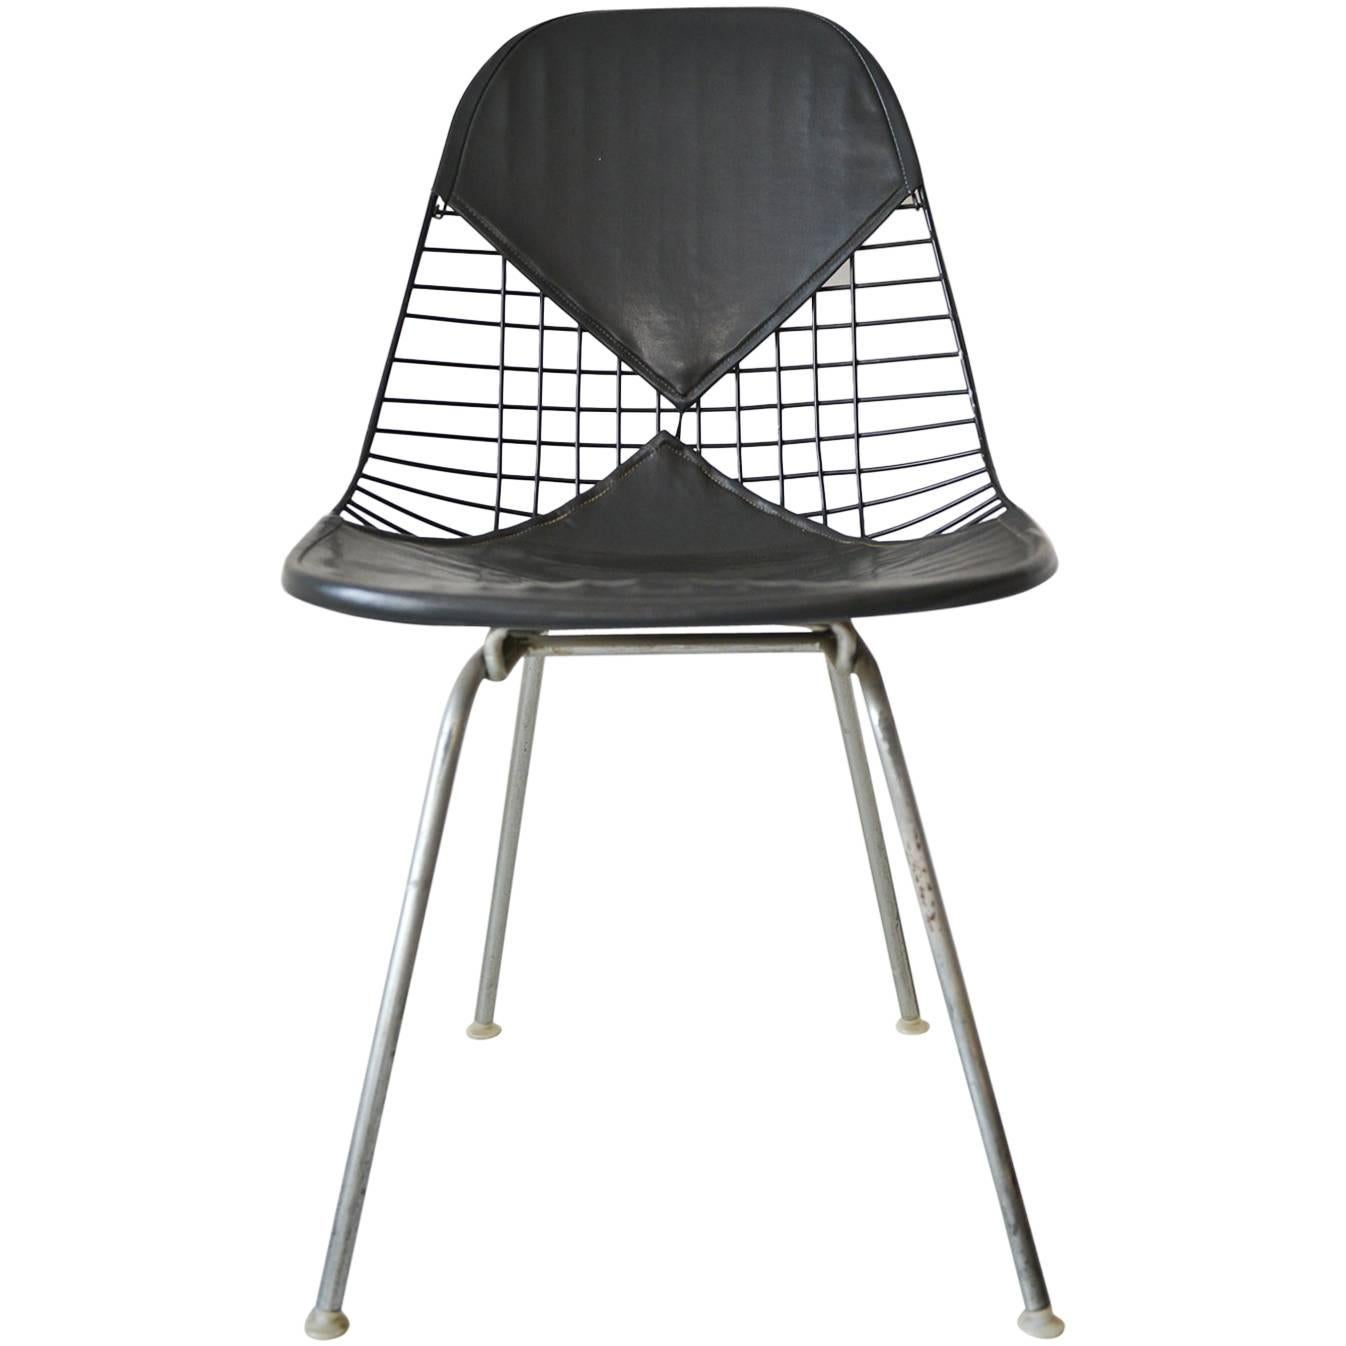 Eames DKX 2 Vintage Wire Chair With Leather Bikini Cover